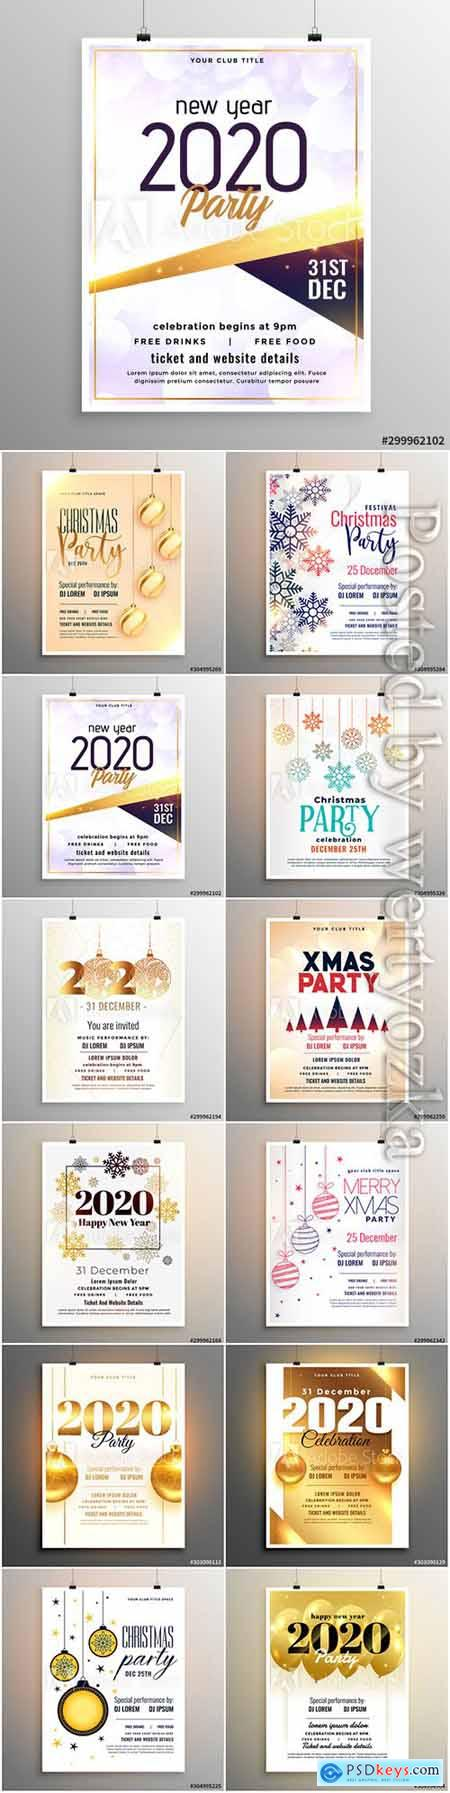 Merry christmas party flyer, Happy new year greeting card